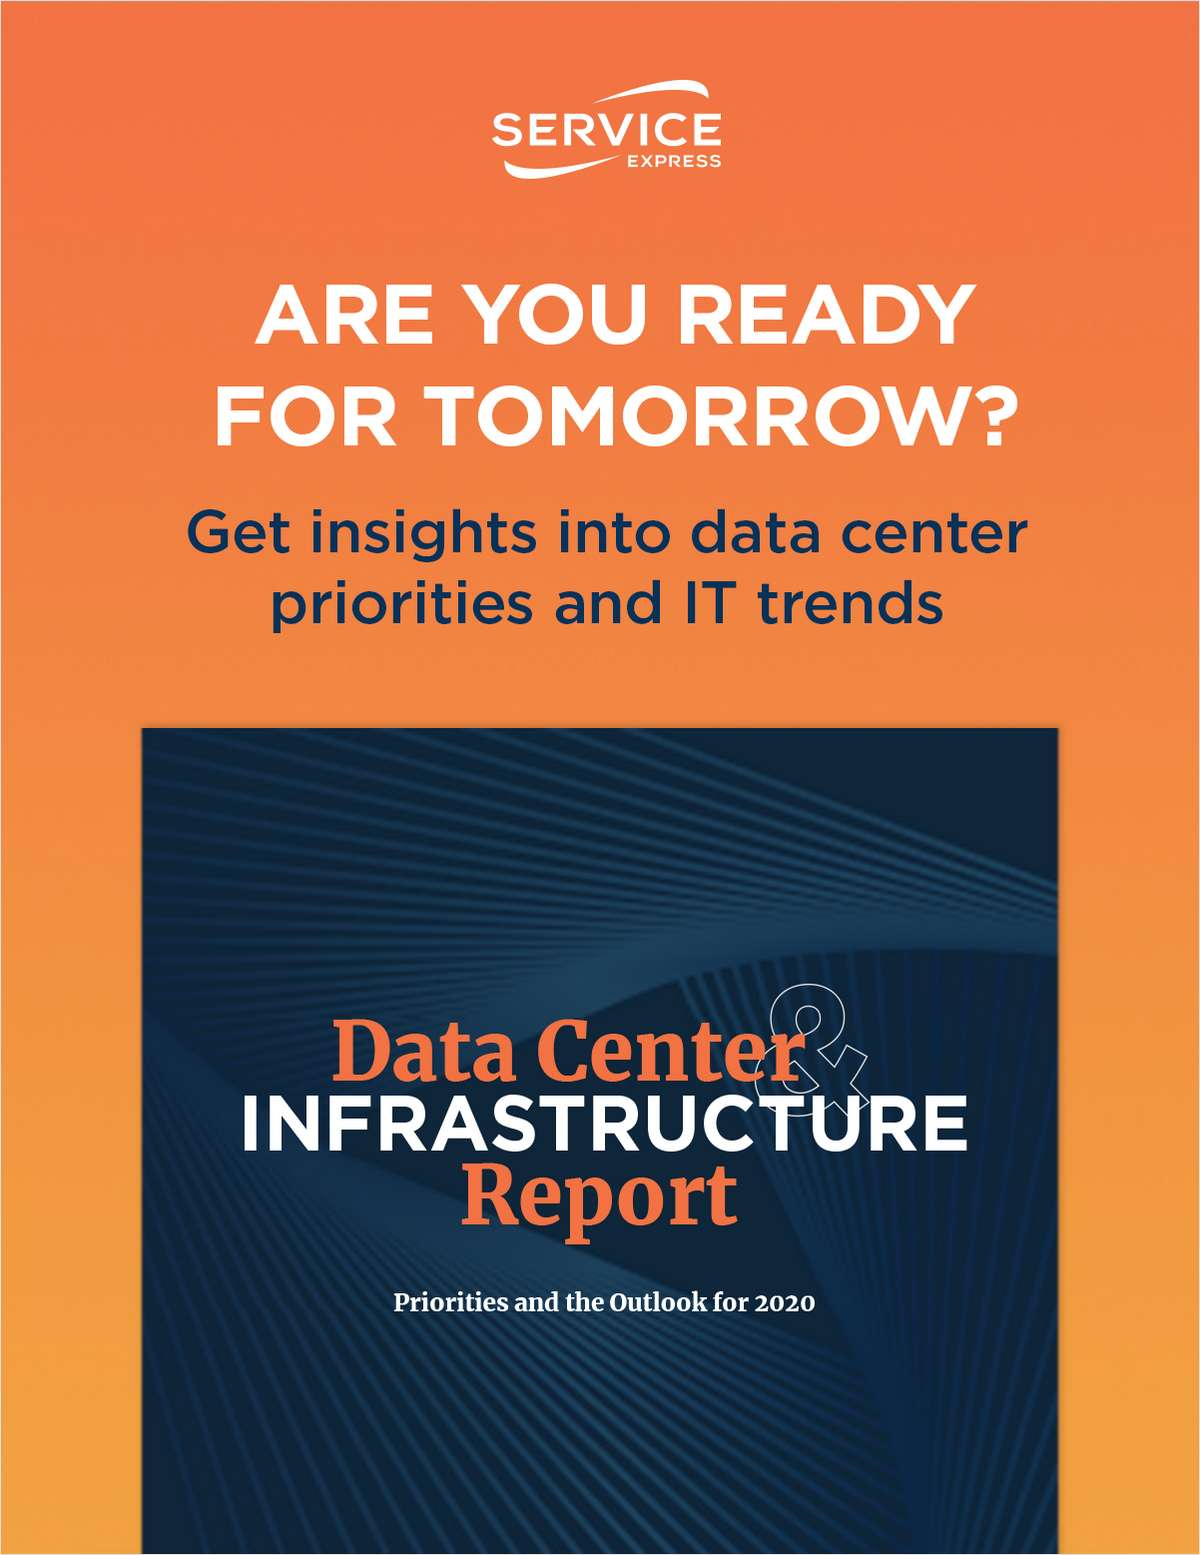 Data Center & Infrastructure Report: Outlook for 2020